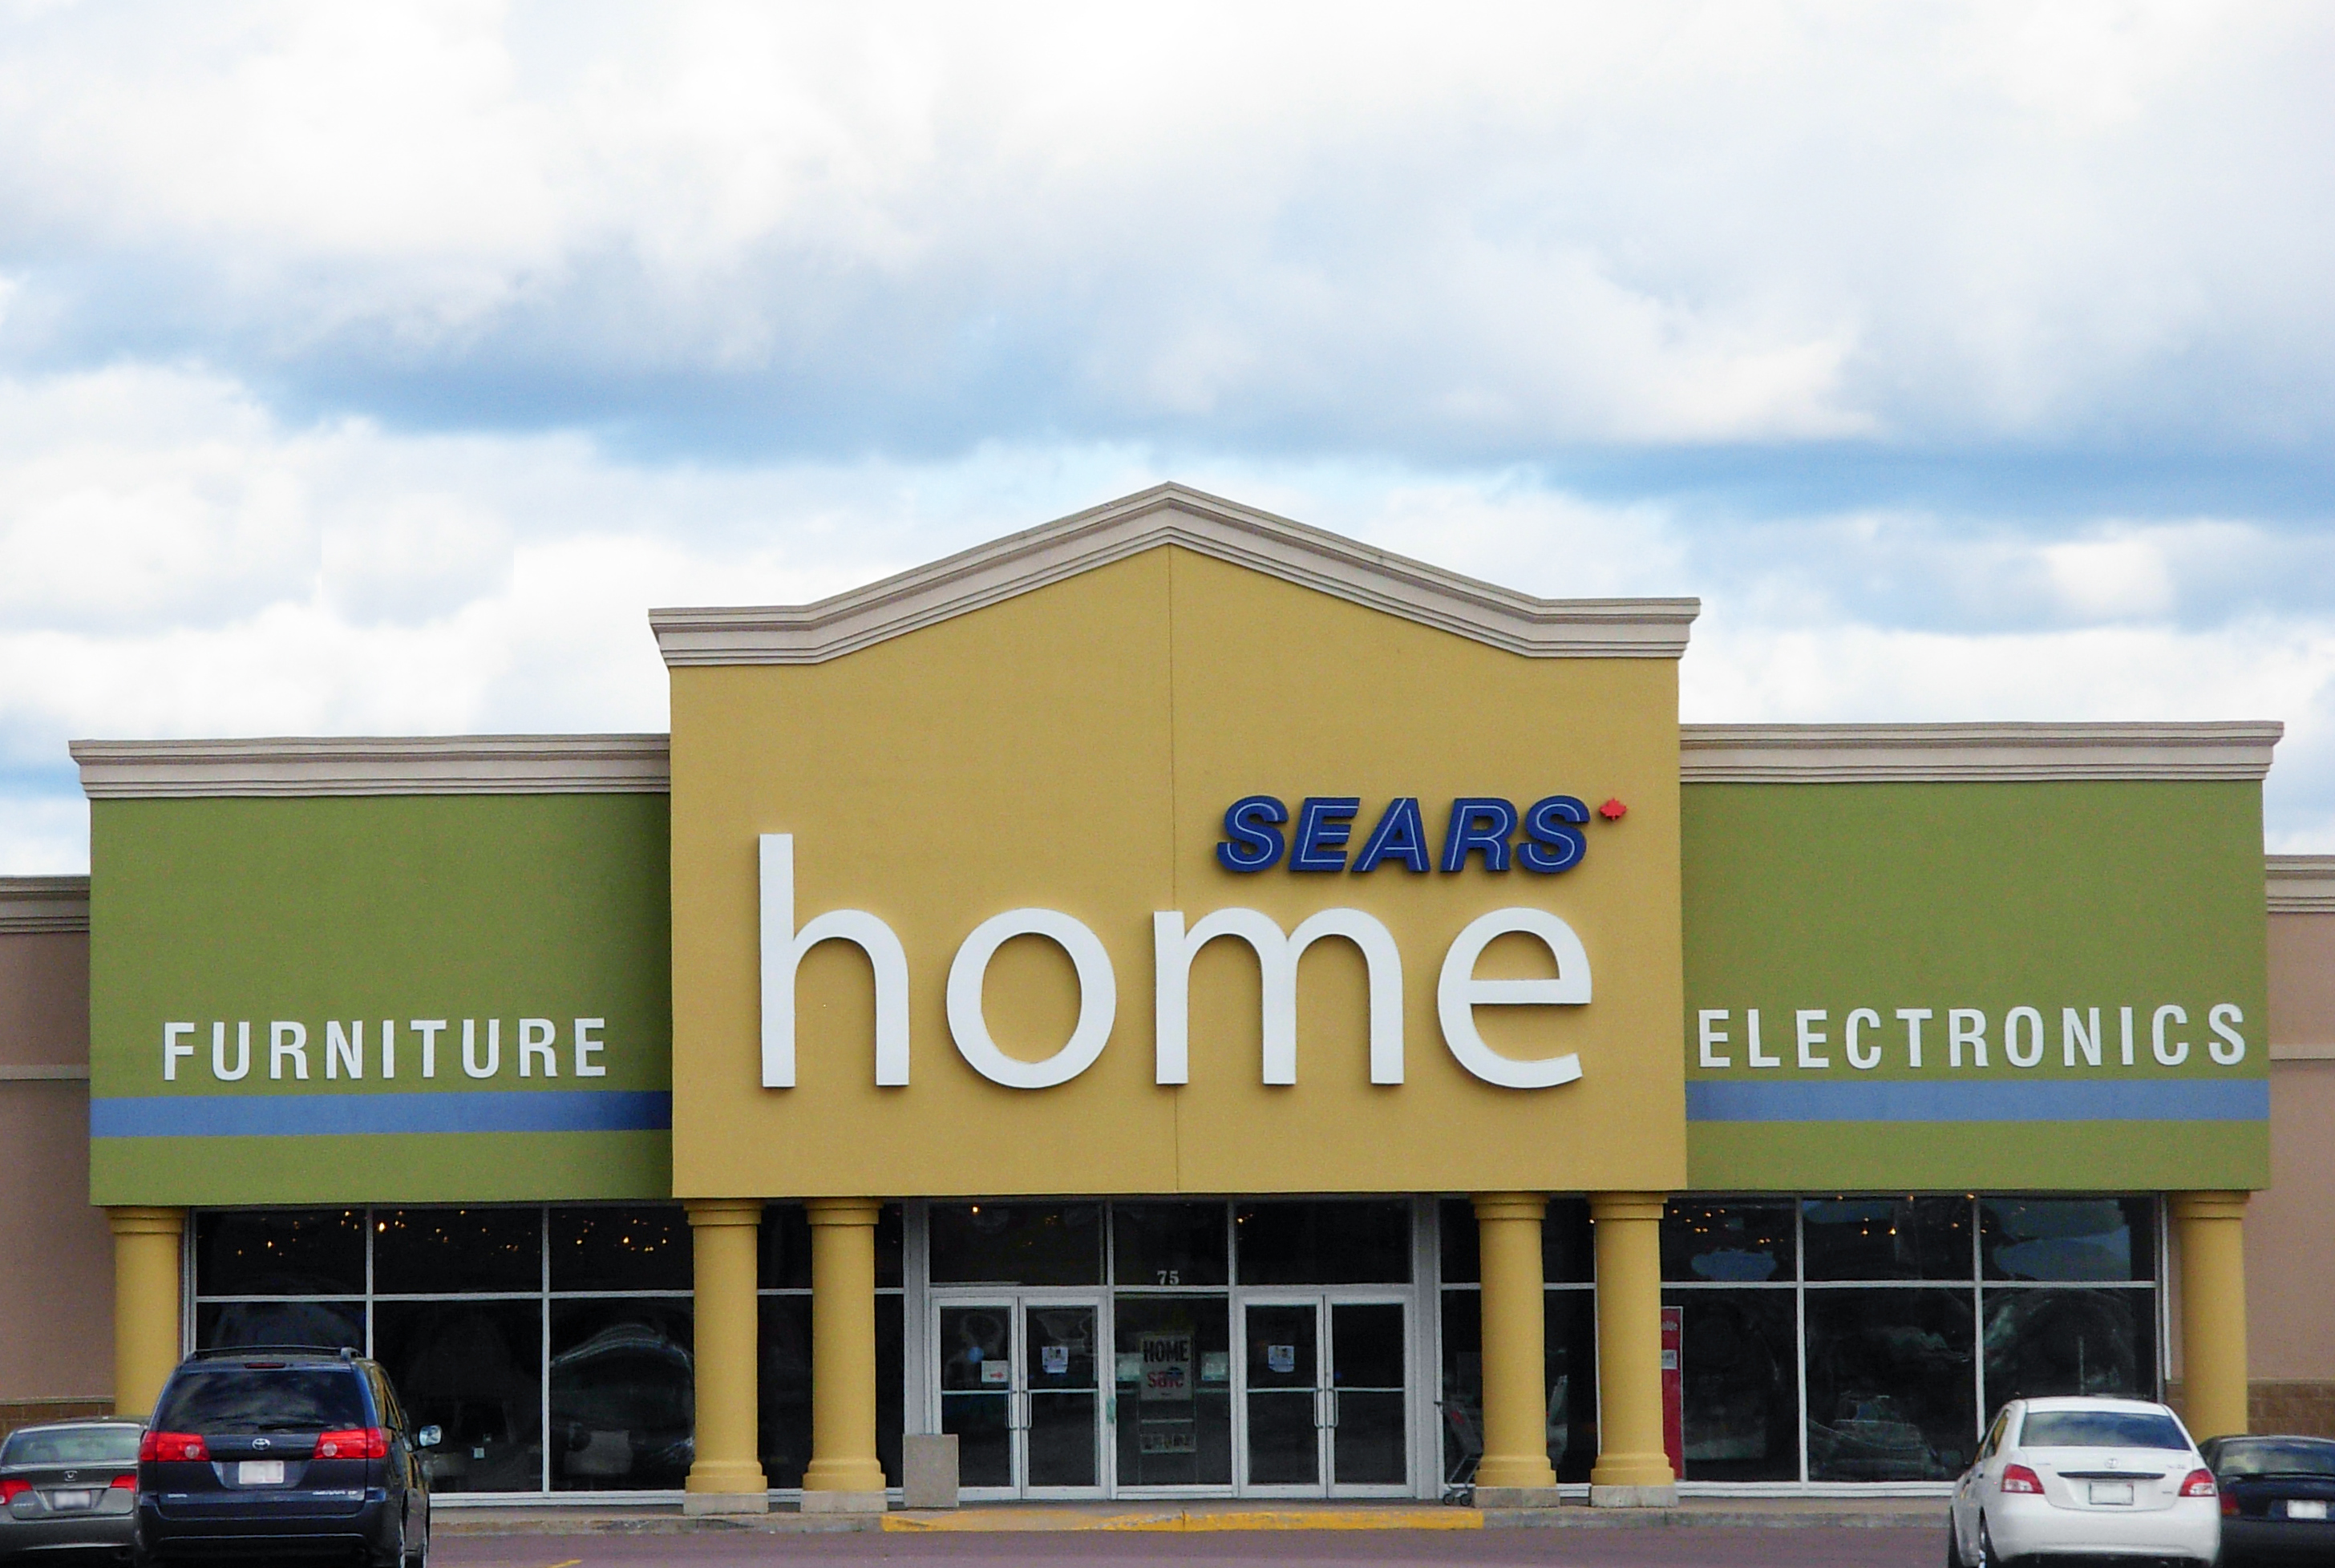 Sears Furniture Kitchener Similiar Sears Home Store Keywords